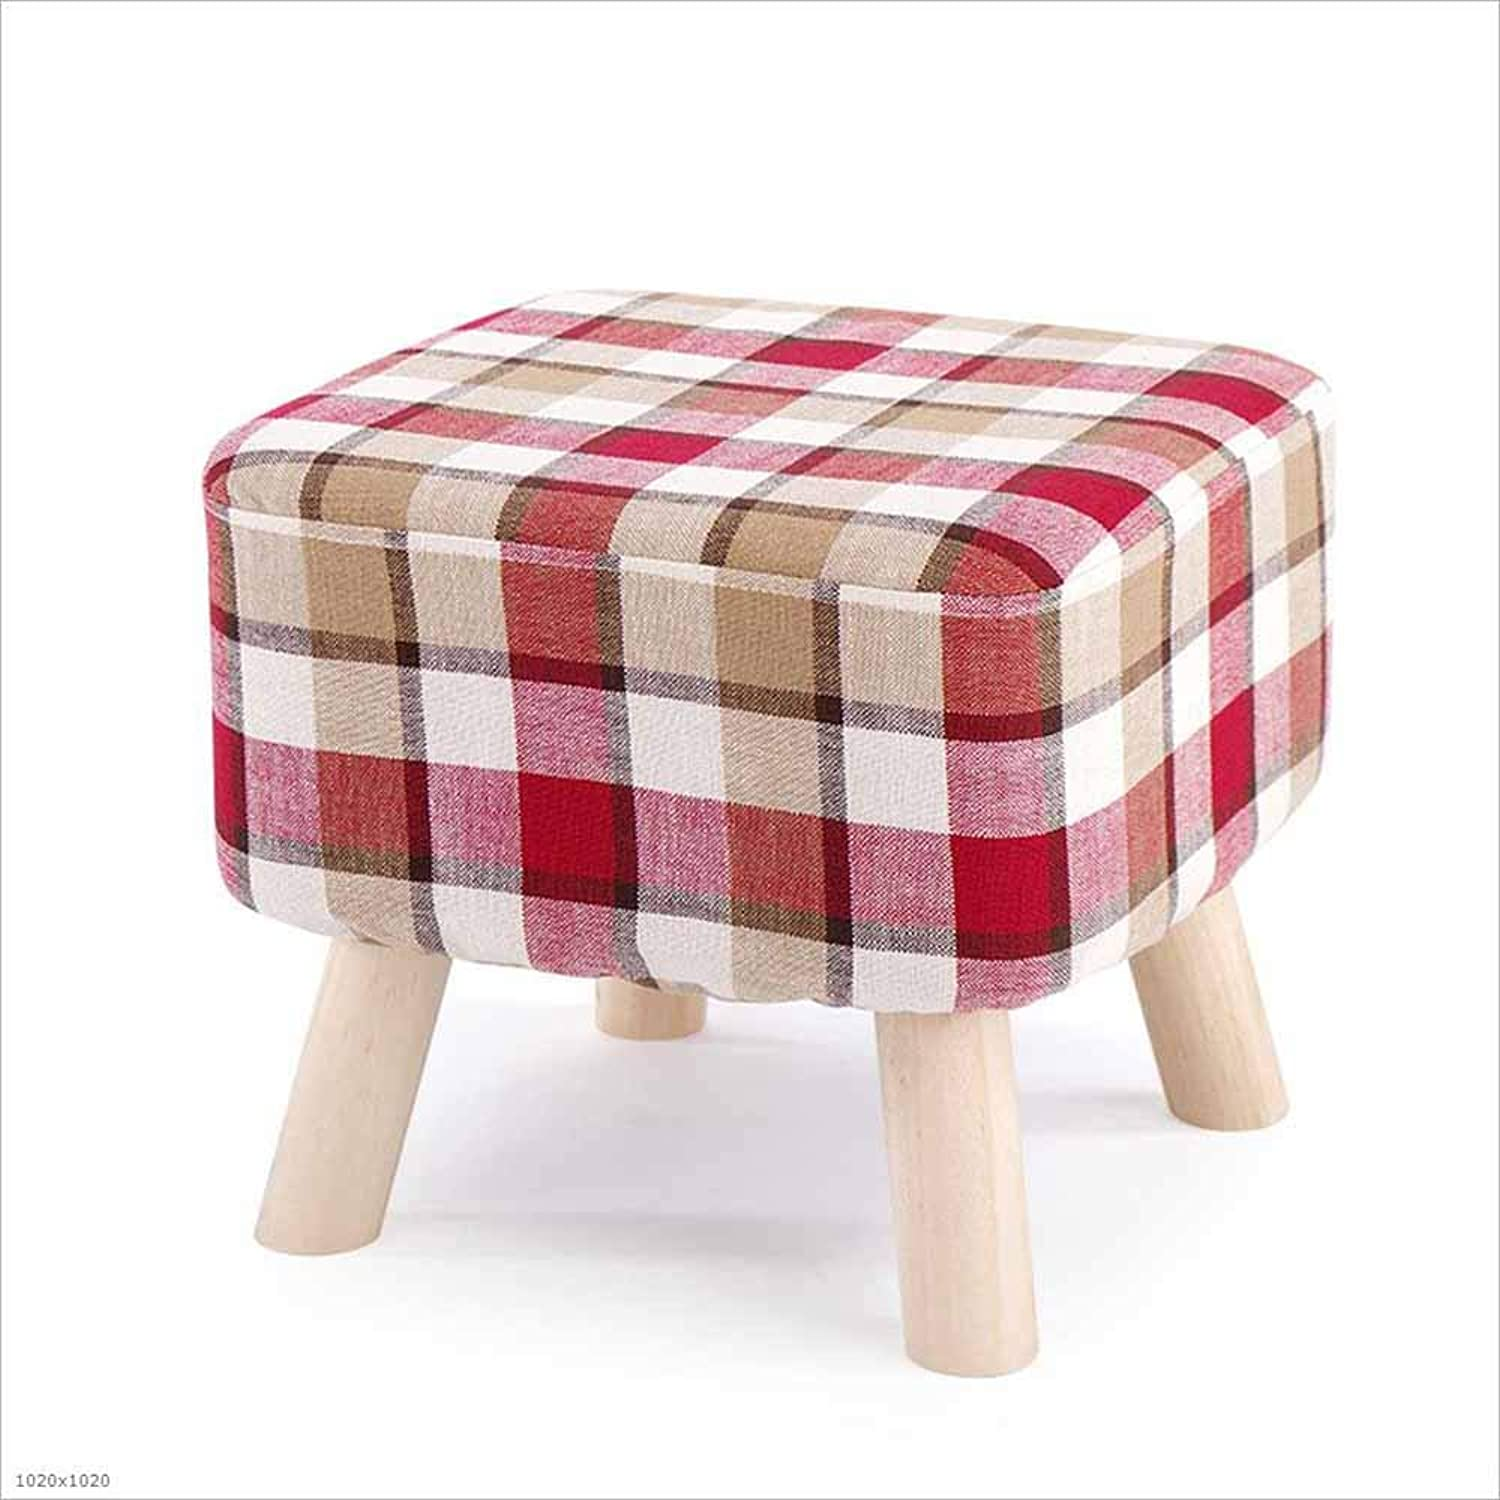 Sofa Stool Fabric Solid Wood Footstool Change shoes Stool Bedroom Cushion Seat Bench 40×40×35Cm, 1